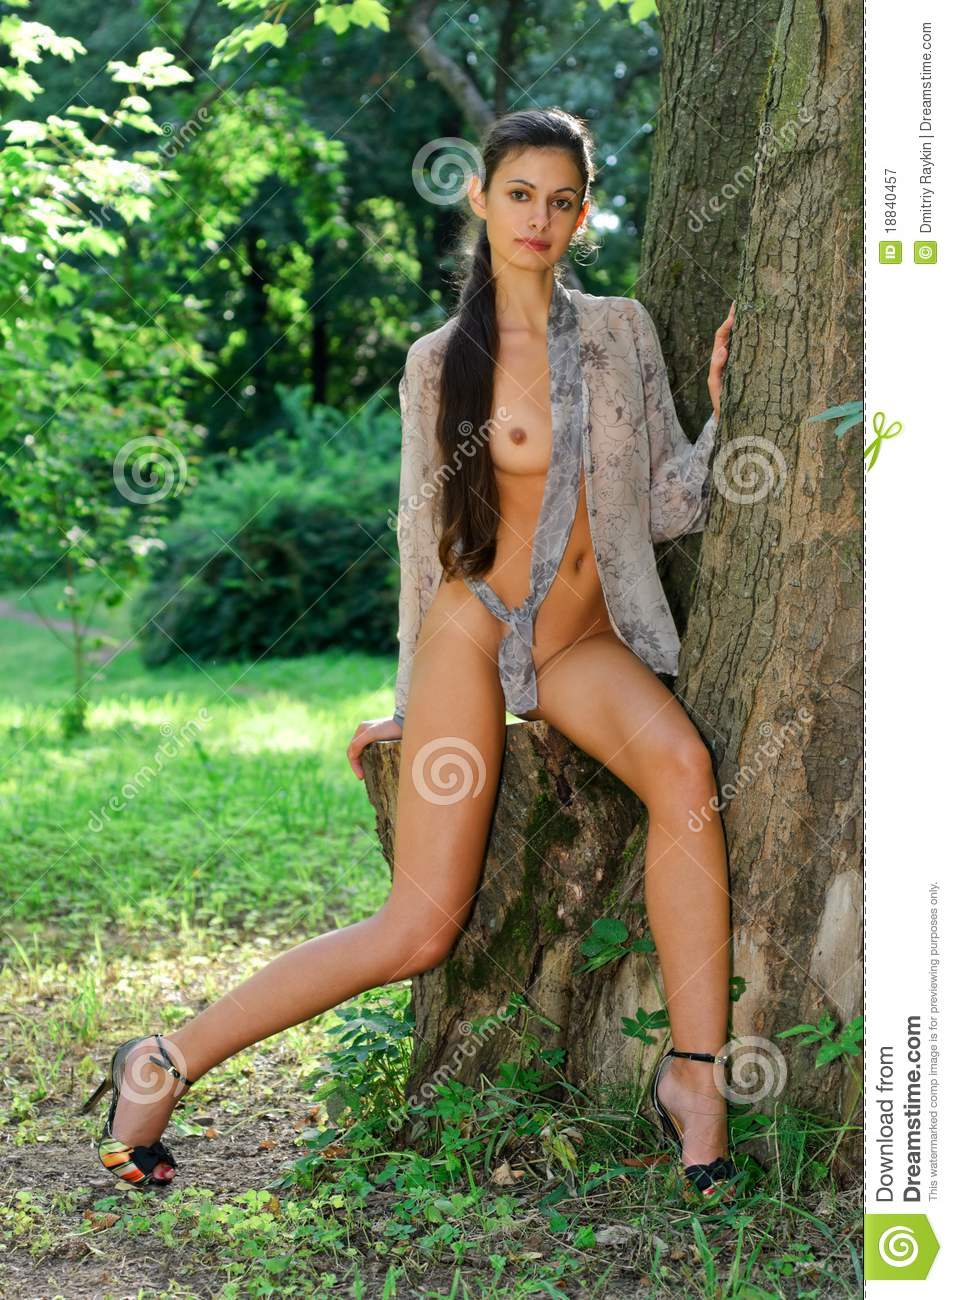 Nude women in the forest nude clips